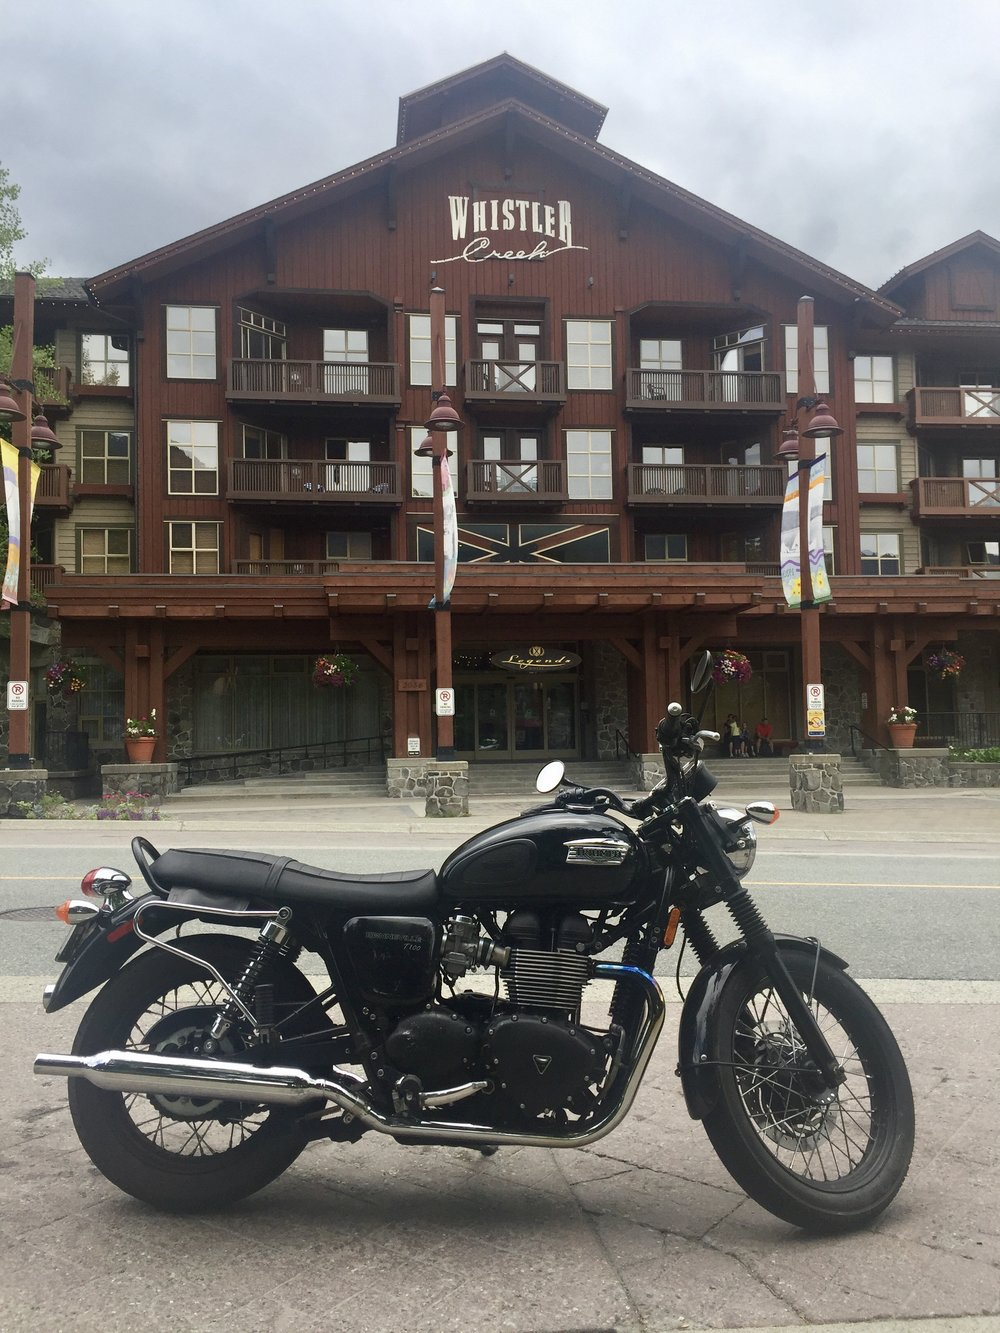 Whistler Mountain has two parts - Whistler Creek and Whistler Village